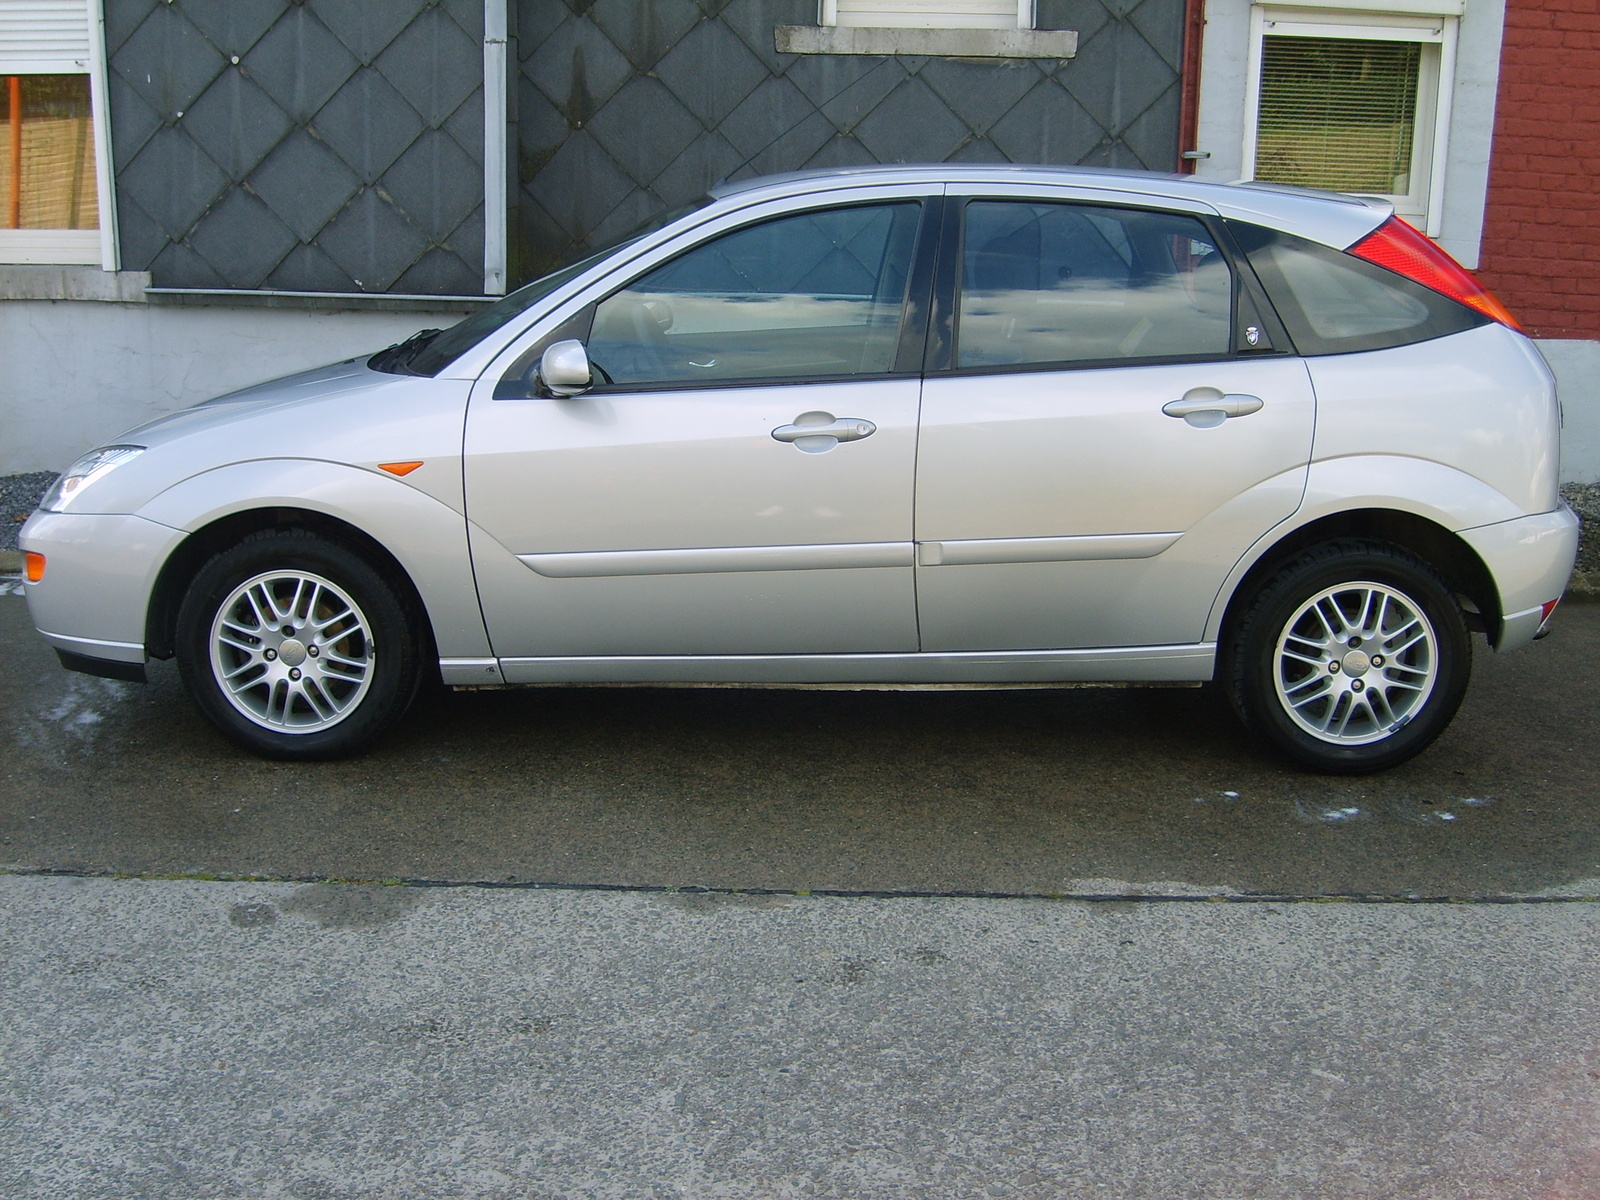 2003 Ford Focus Pictures C129 pi11716800 also Auto Oldtimer P70 Stare Samochody 962404 further 2008 Ford Fusion Sel Pictures T31686 pi14822067 likewise Novo Ford Ka Problemas Na Embreagem besides 9006069. on ford tempo car